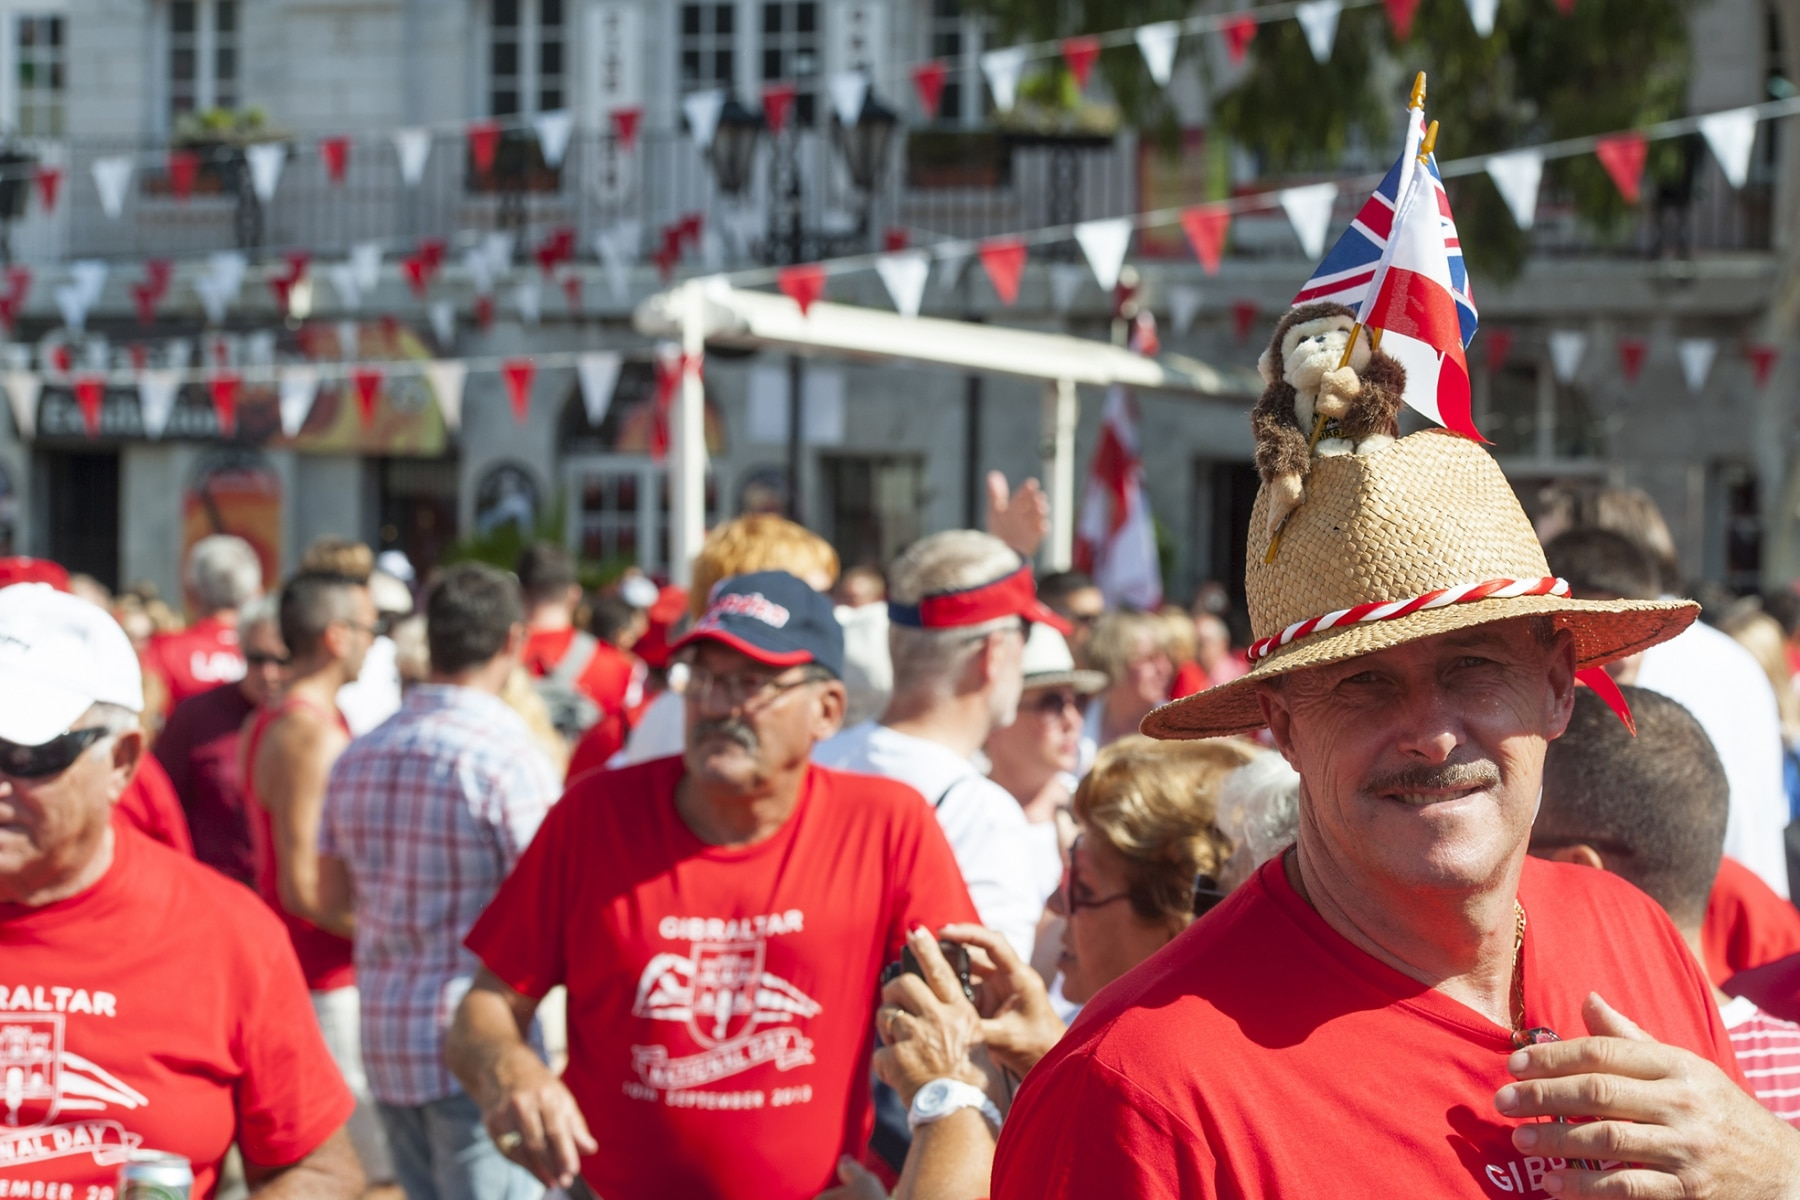 GIBRALTAR NATIONAL DAY